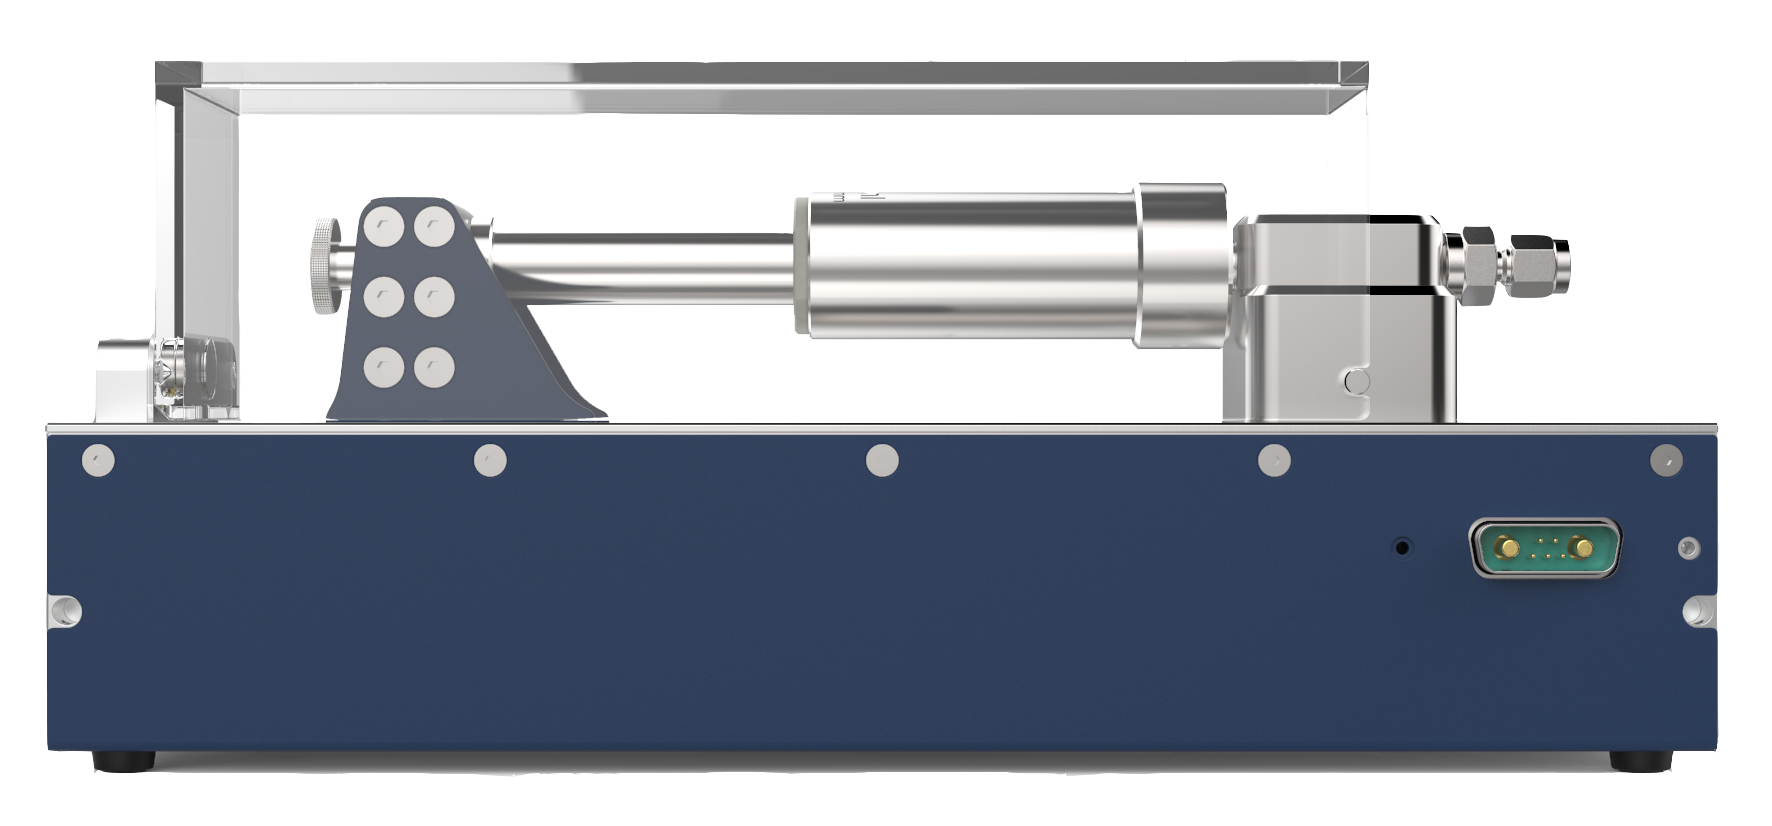 Nemesys high pressure module with syringe side view